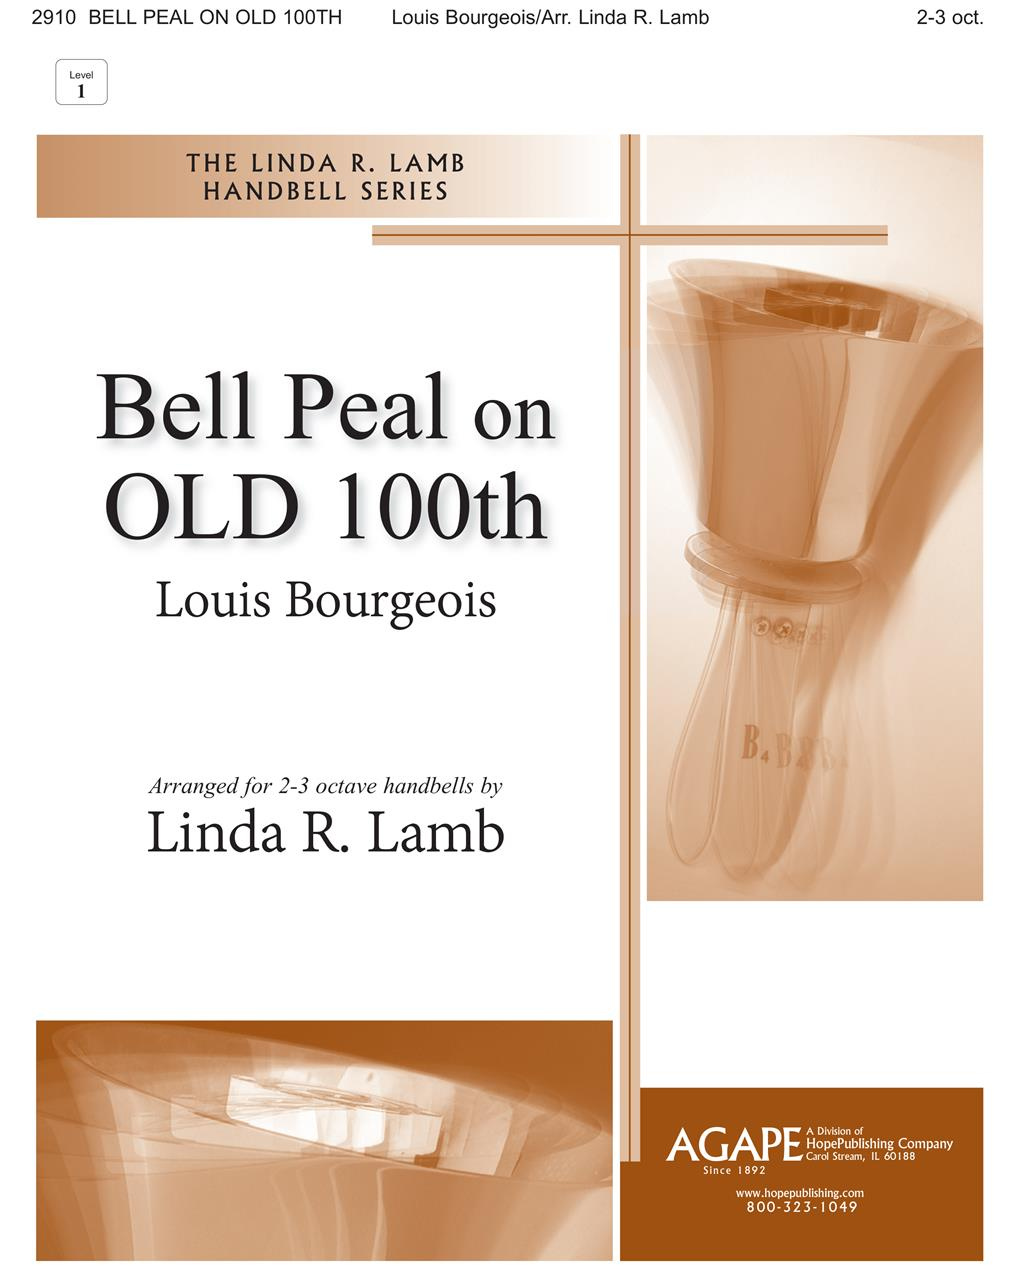 Bell Peal on Old 100th - 2-3 Oct. Cover Image